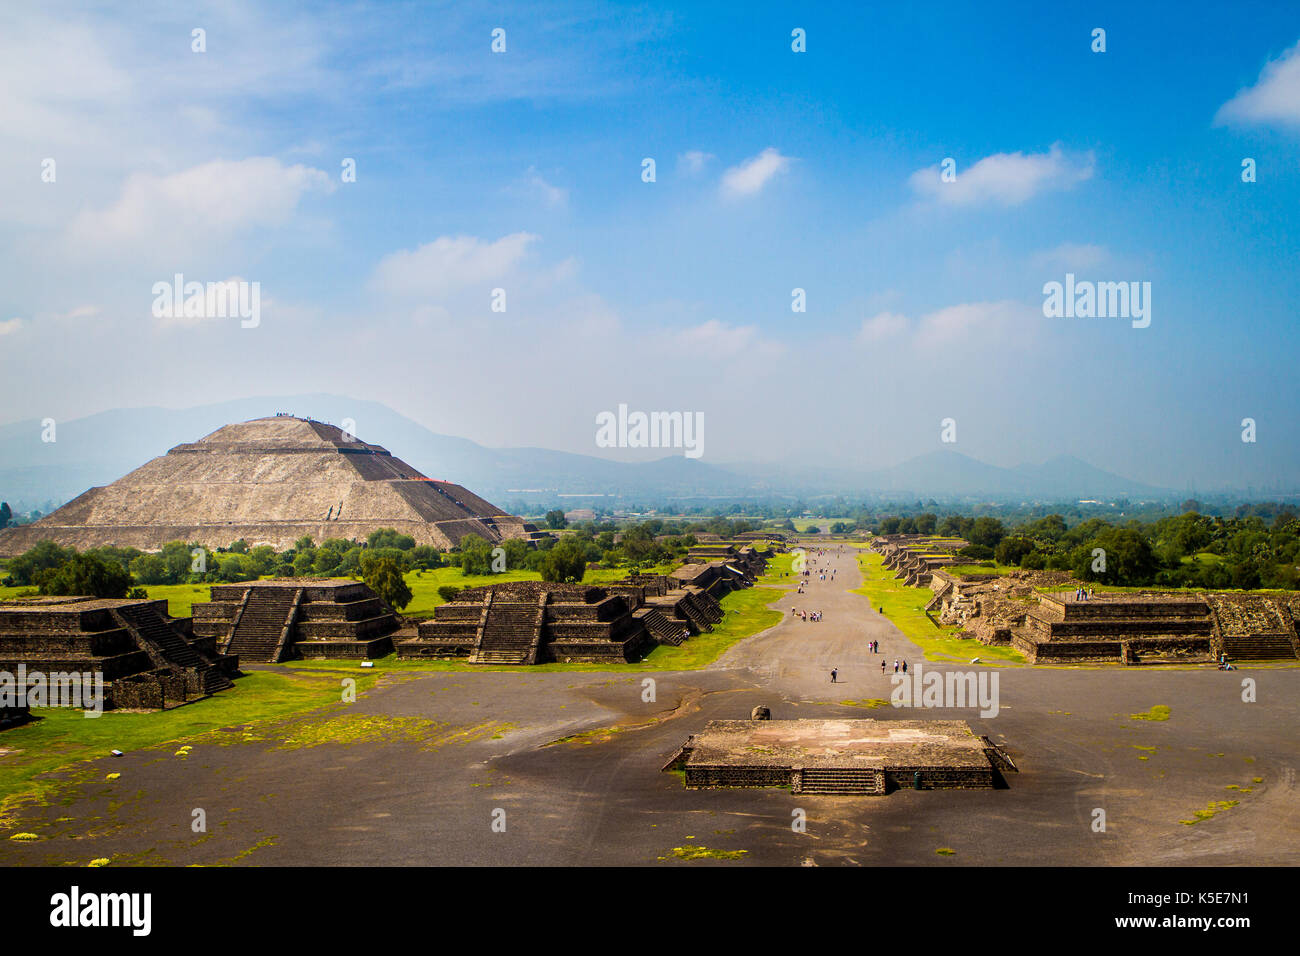 Pyramid of the Sun and Avenue of the Dead, Teotihuacan, Mexico - Stock Image